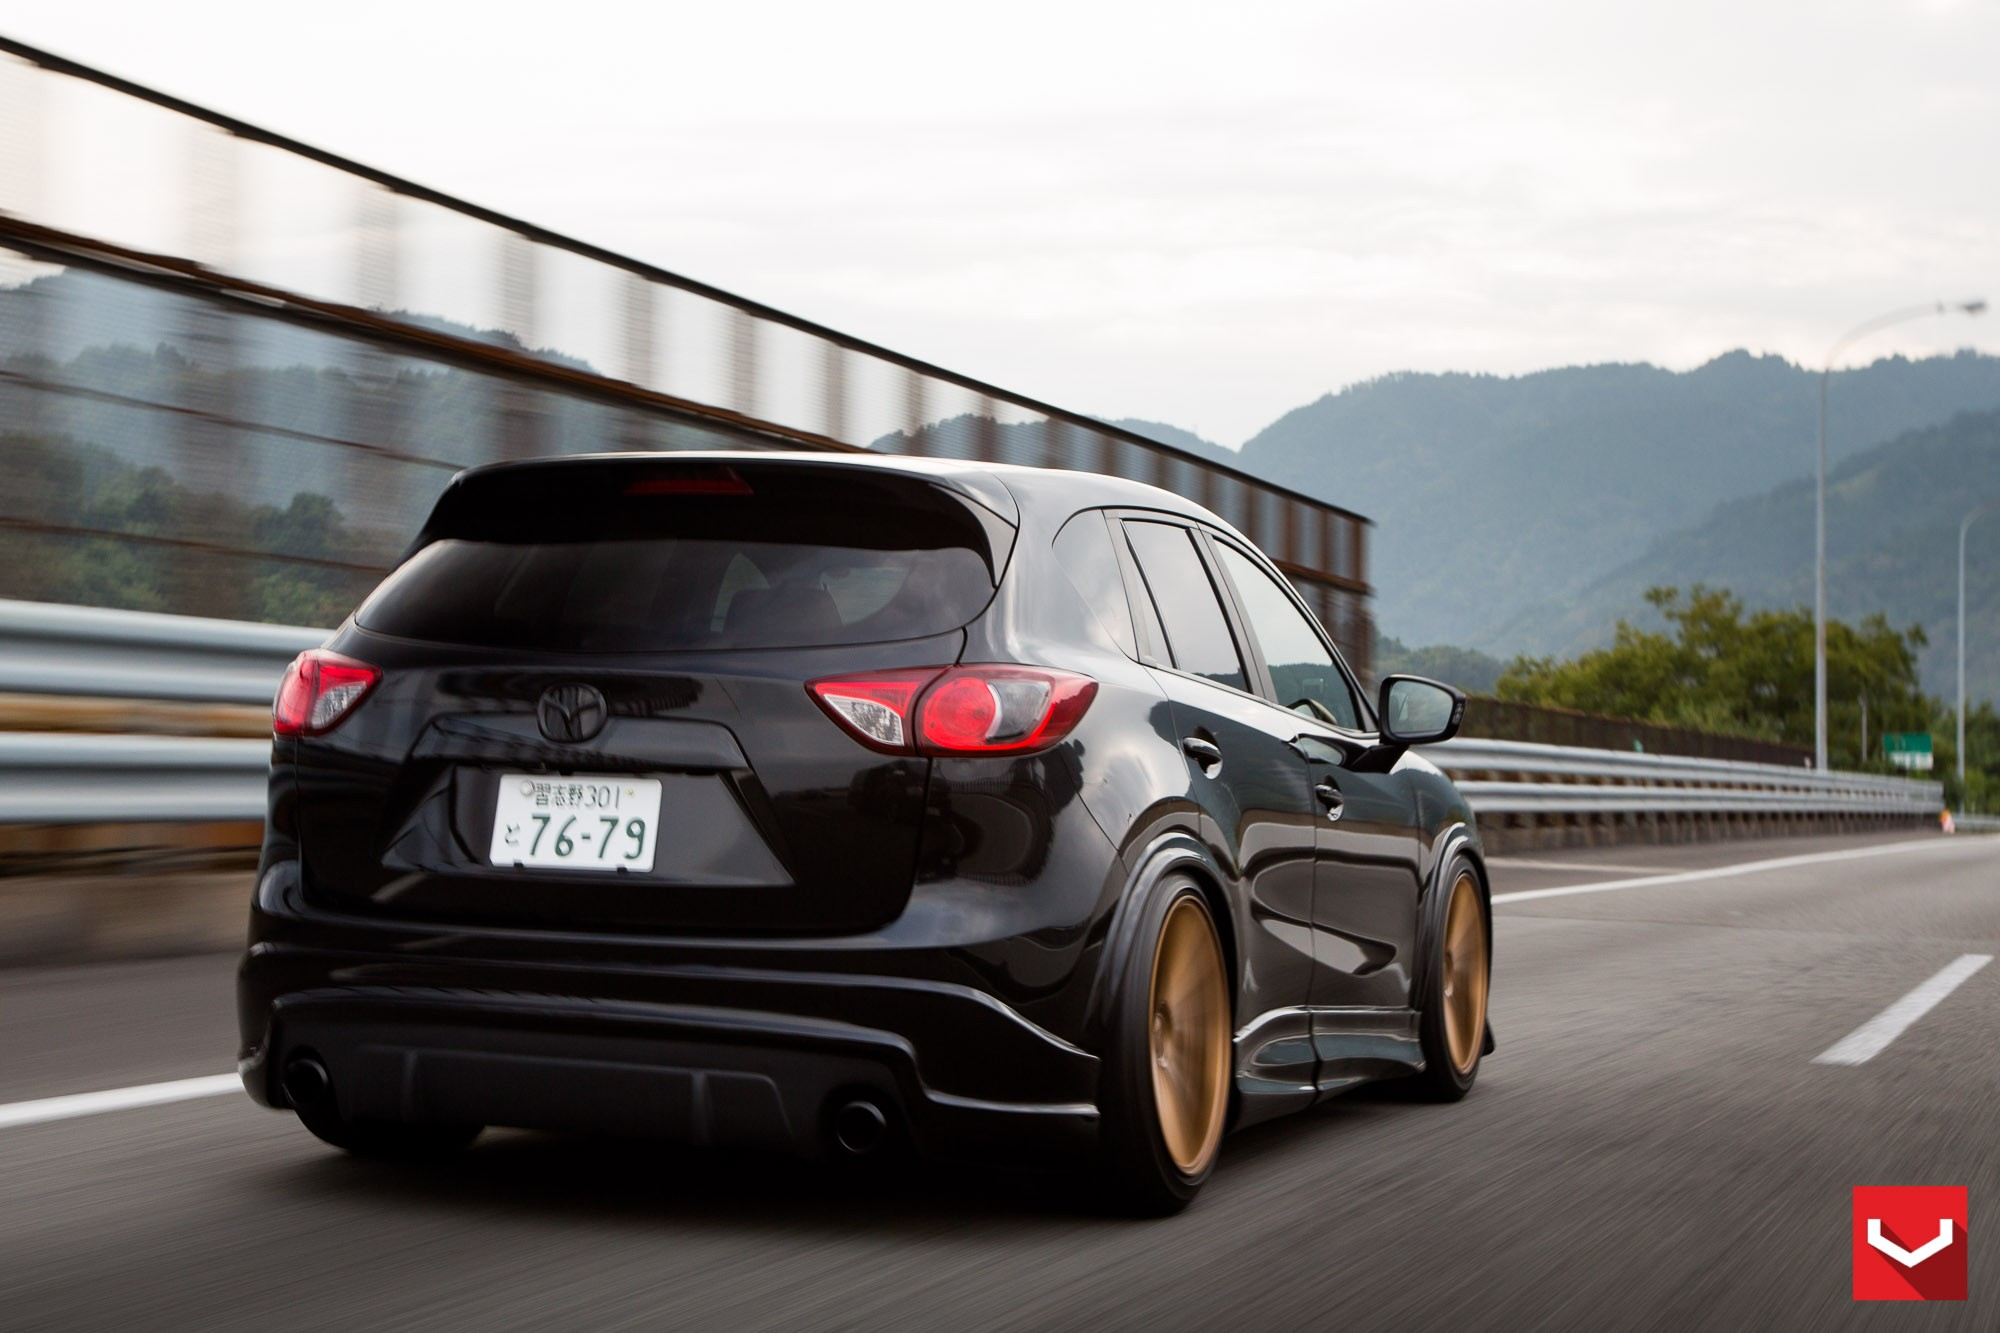 tuningcars mazda cx 5 tuned with vossen wheels and air suspension. Black Bedroom Furniture Sets. Home Design Ideas